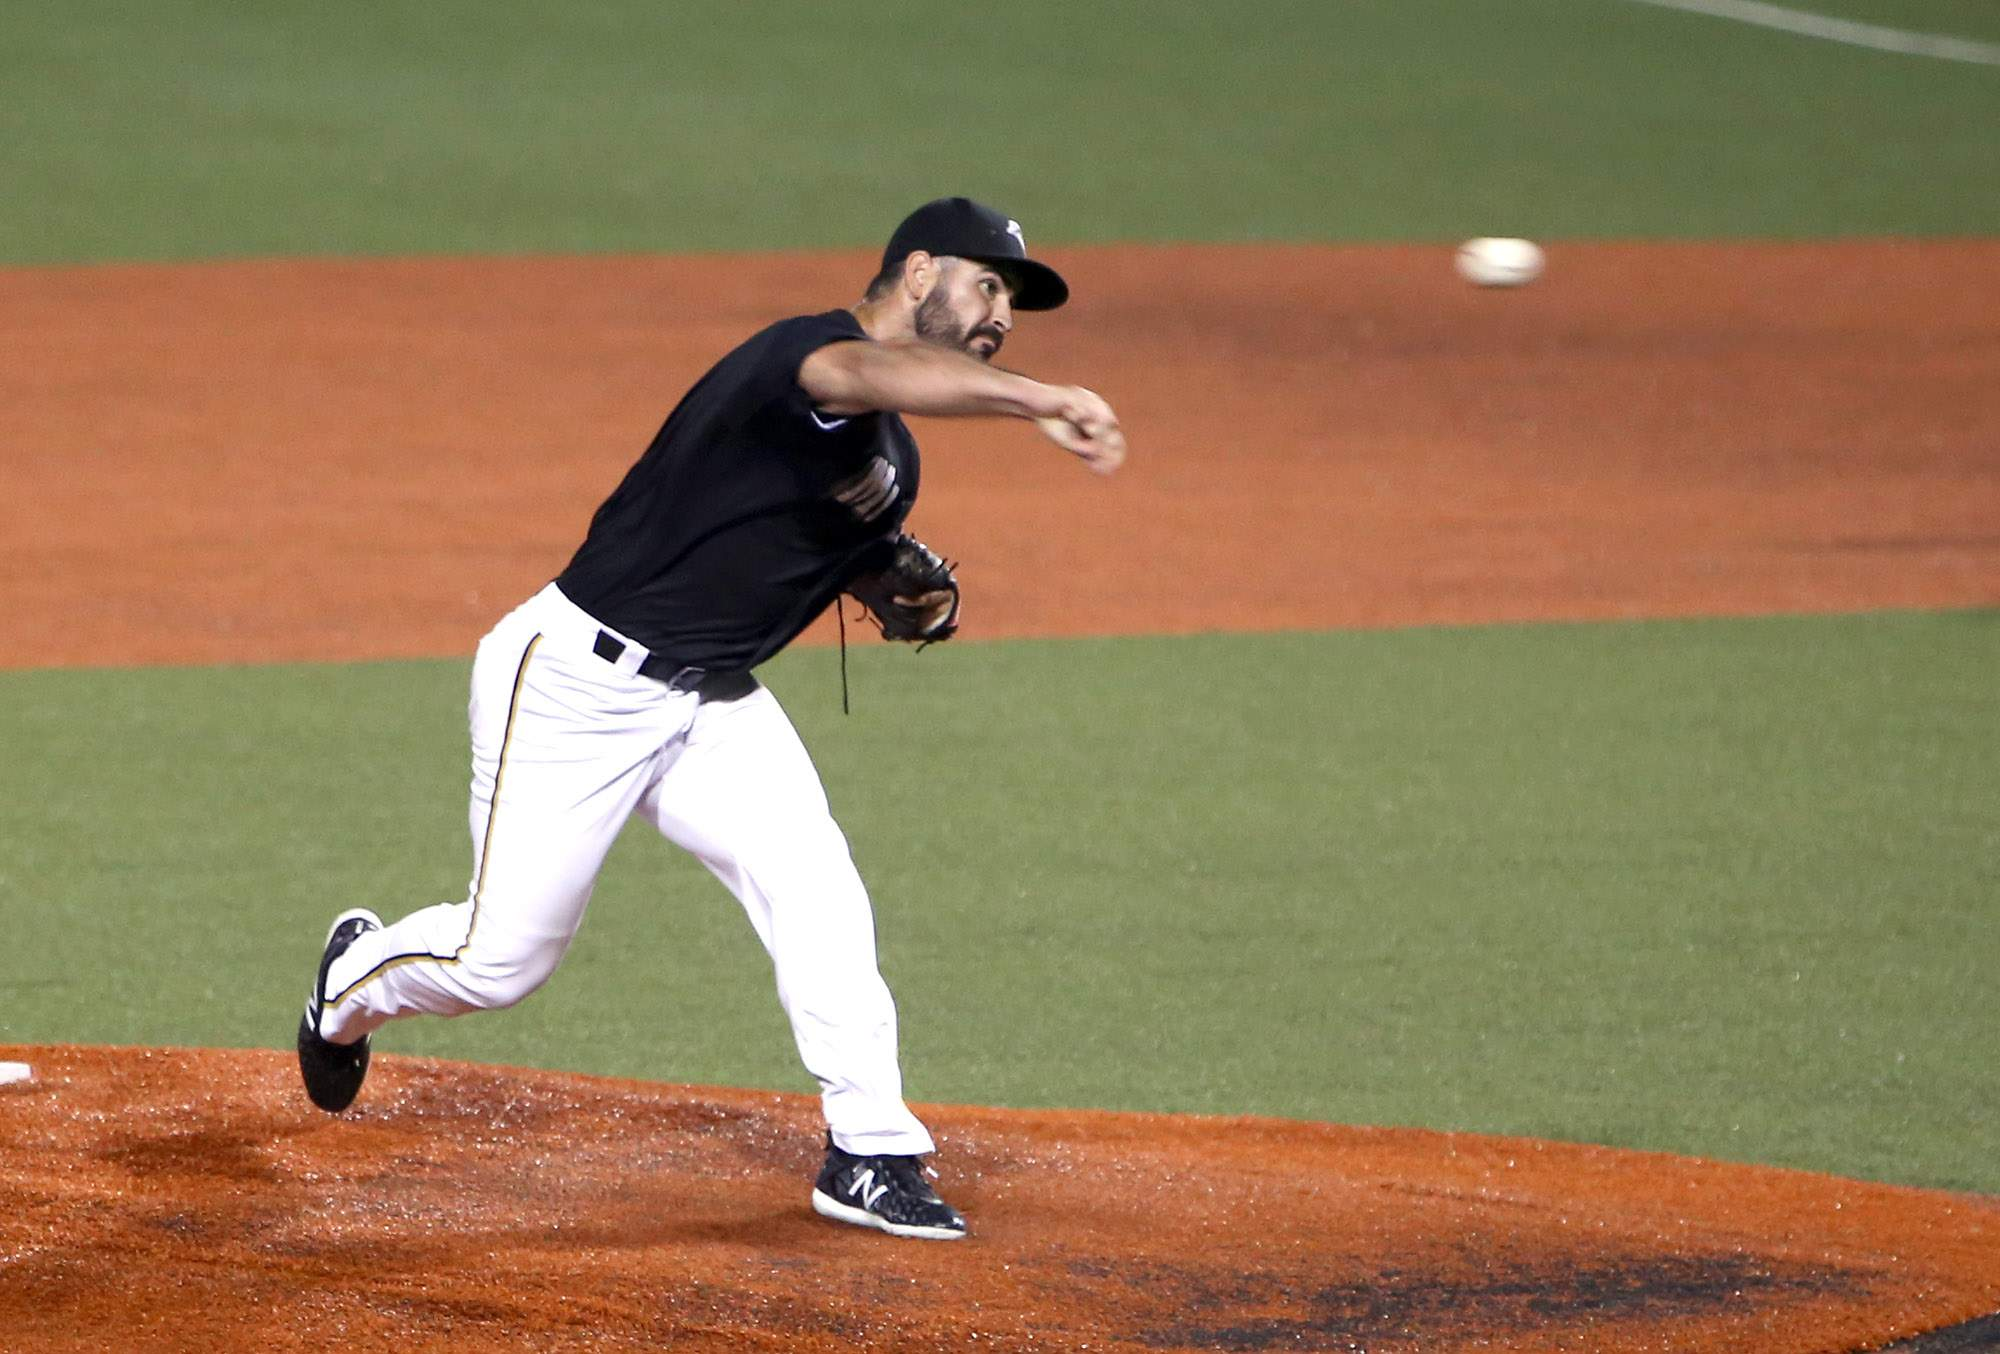 Kurt Heyer throws a pitch in the seventh inning of the second game Wednesday night.